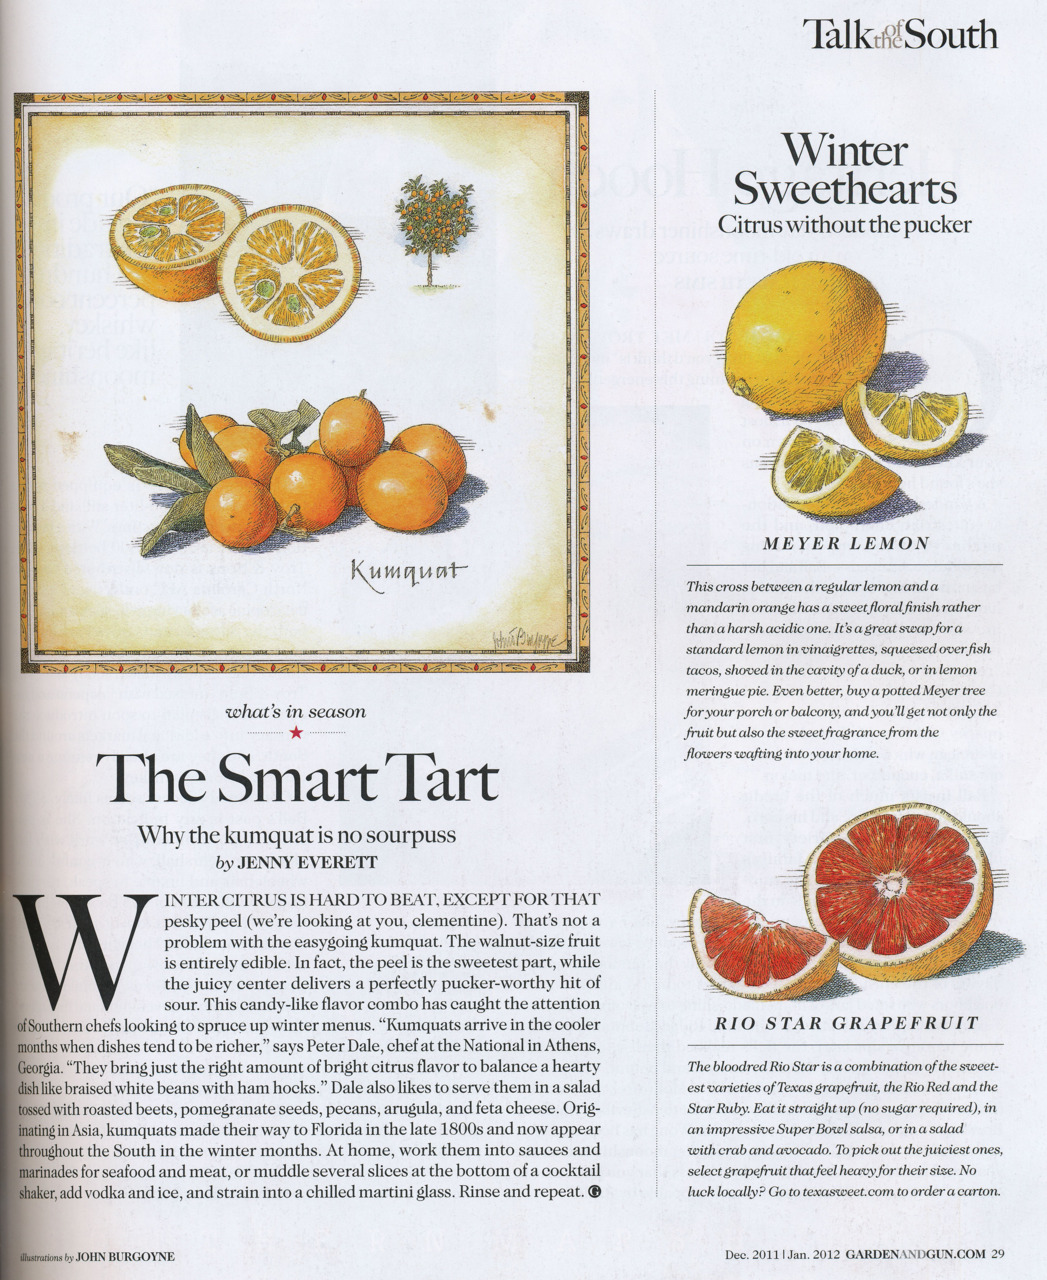 """Chef Dale gets a word in about kumquats as a welcome winter citrus in this month's   Garden and Gun  , Dec 2011/Jan 2012     { """"Kumquats arrive in the cooler months when dishes tend to be richer,"""" says Peter Dale, chef at The National in Athens, Georgia. """"They bring just the right amount of bright citrus flavor to balance a hearty dish like braised white beans with ham hocks."""" Dale also likes to serve them in a salad tossed with roasted beets, pomegranate seeds, pecans, arugula, and feta cheese. }    Look out for this beet and kumquat salad on our menu, as well as kumquats served with fish and other hearty winter dishes in the upcoming weeks."""